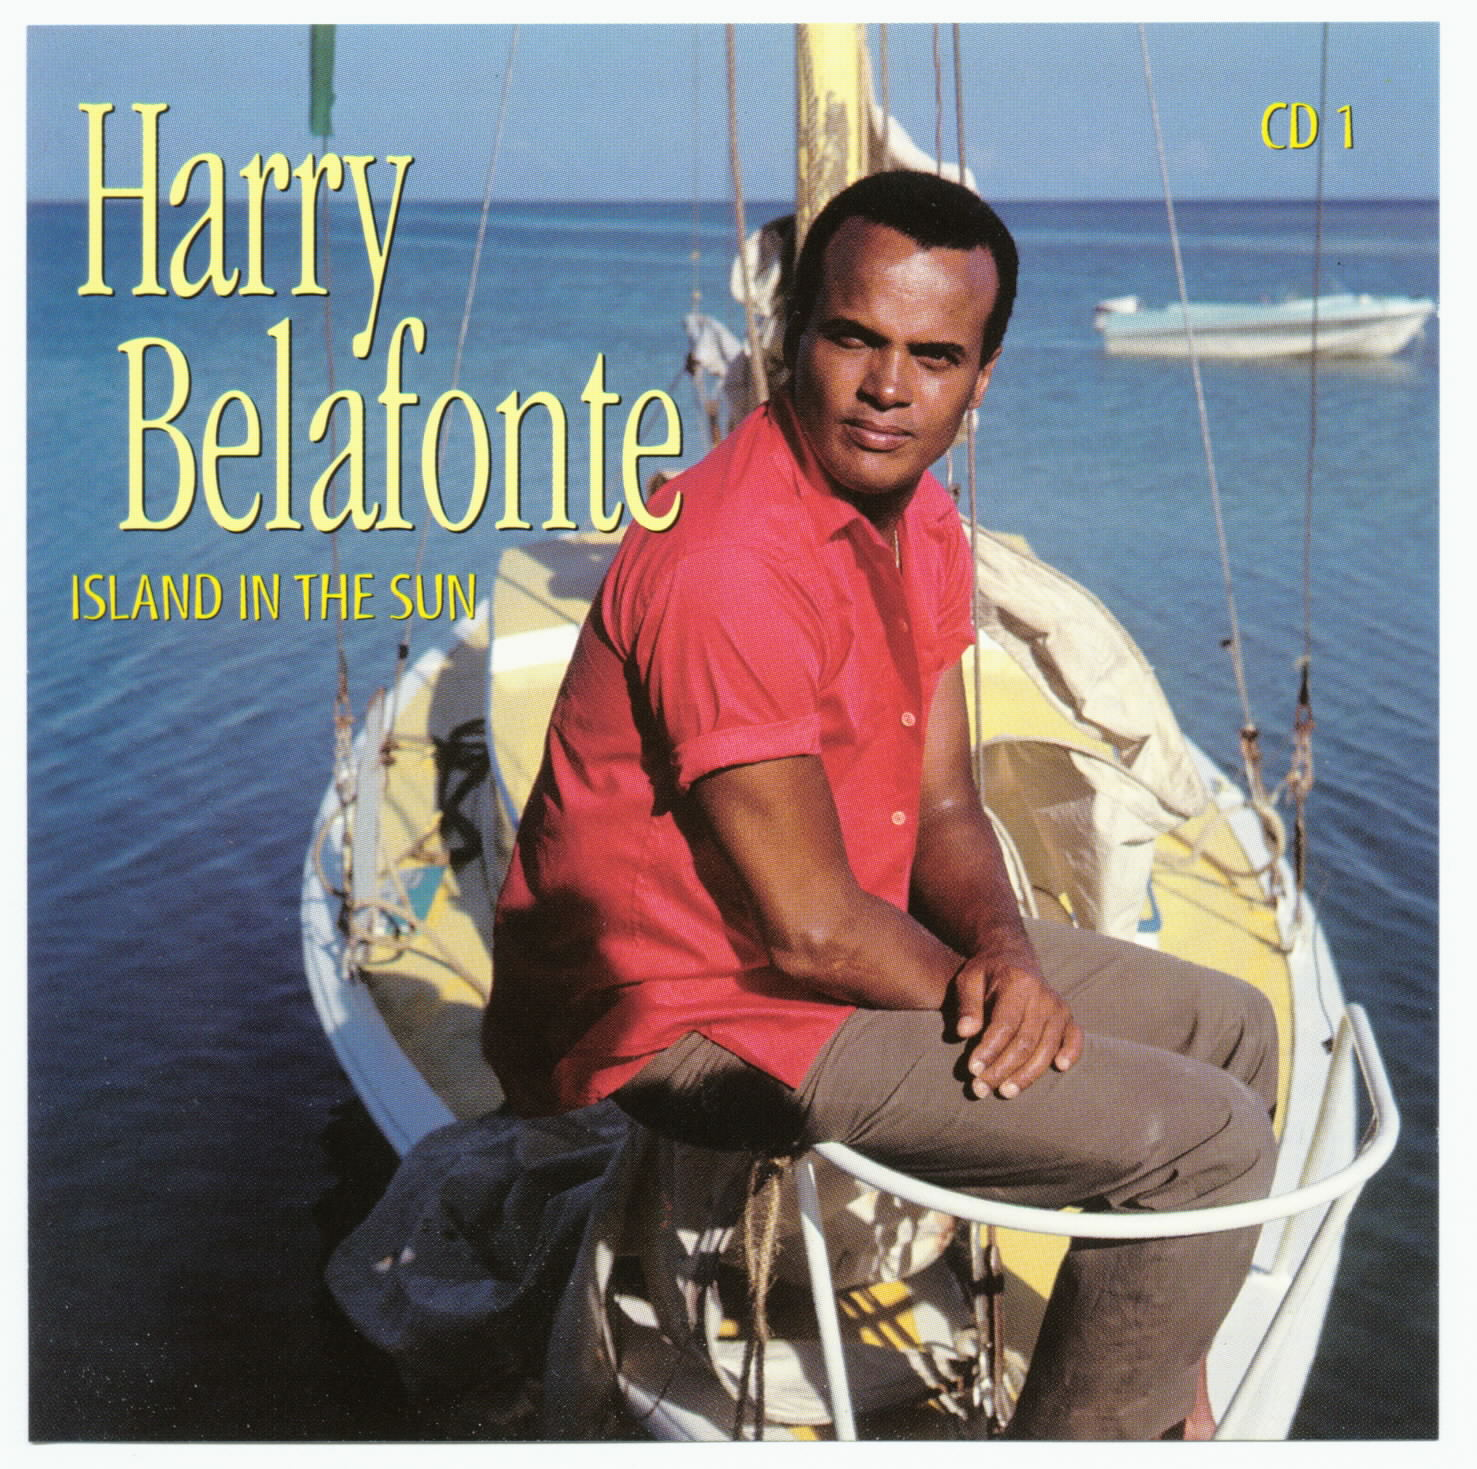 Cocktail Lounge: Harry Belafonte - Island in the Sun